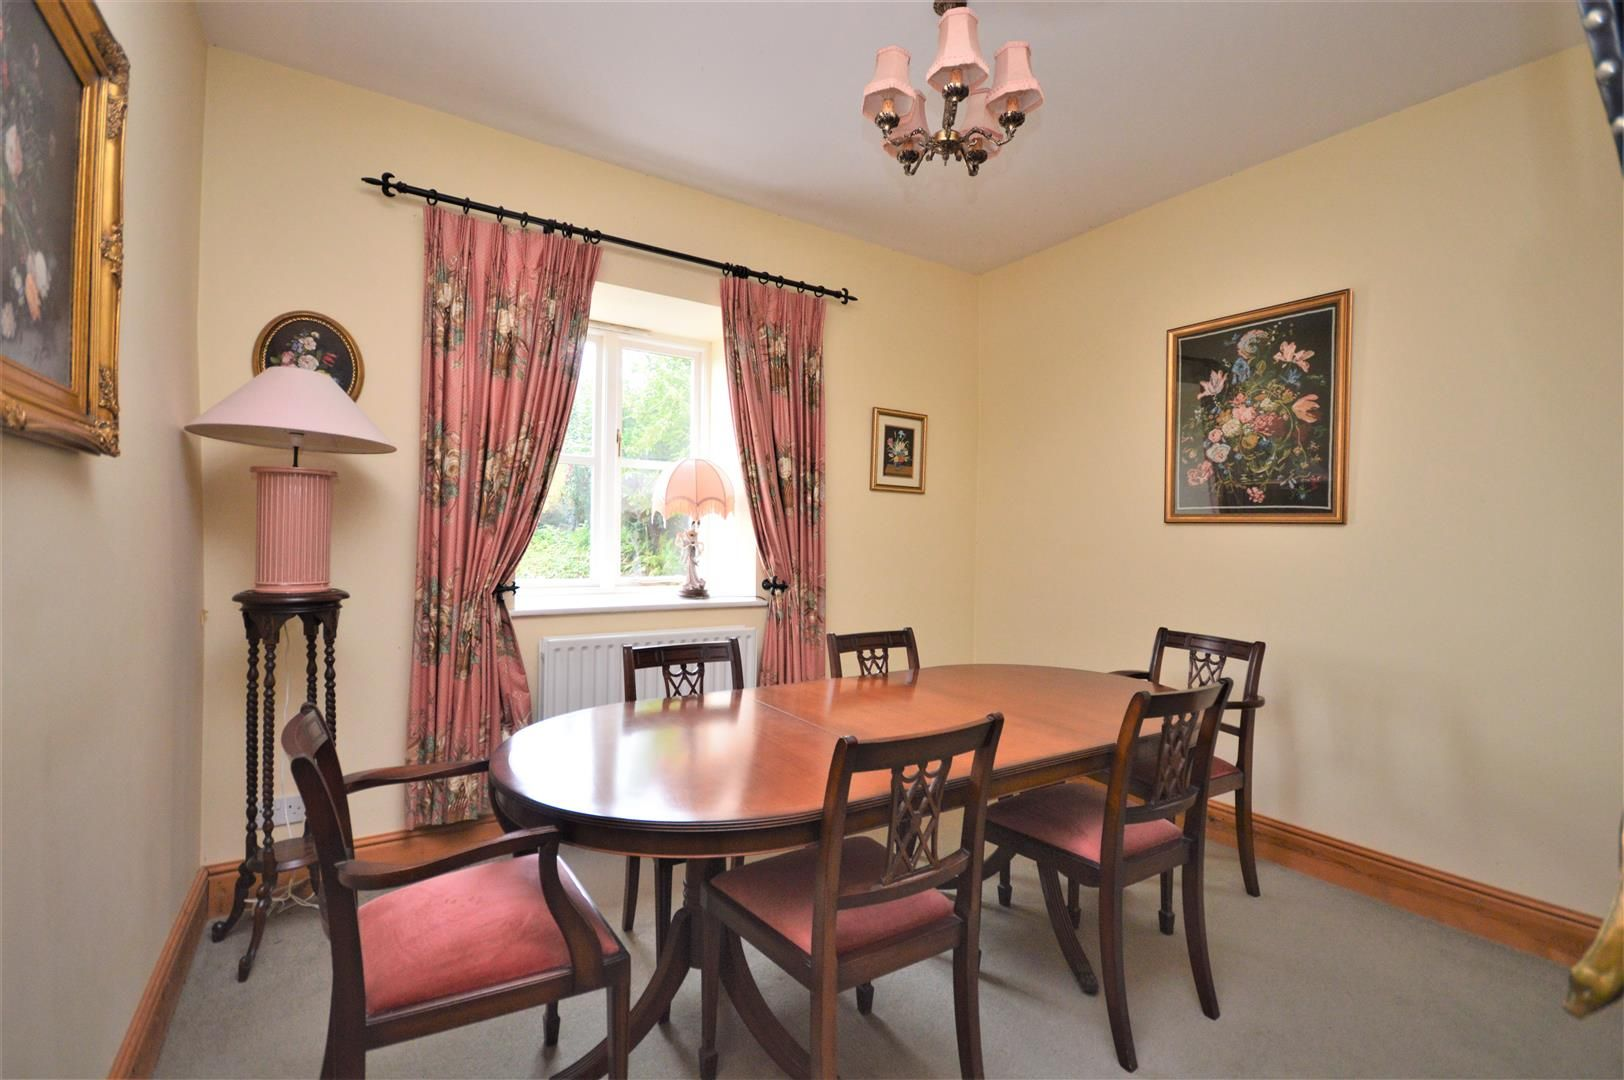 4 bed semi-detached for sale in Nr Madley 8